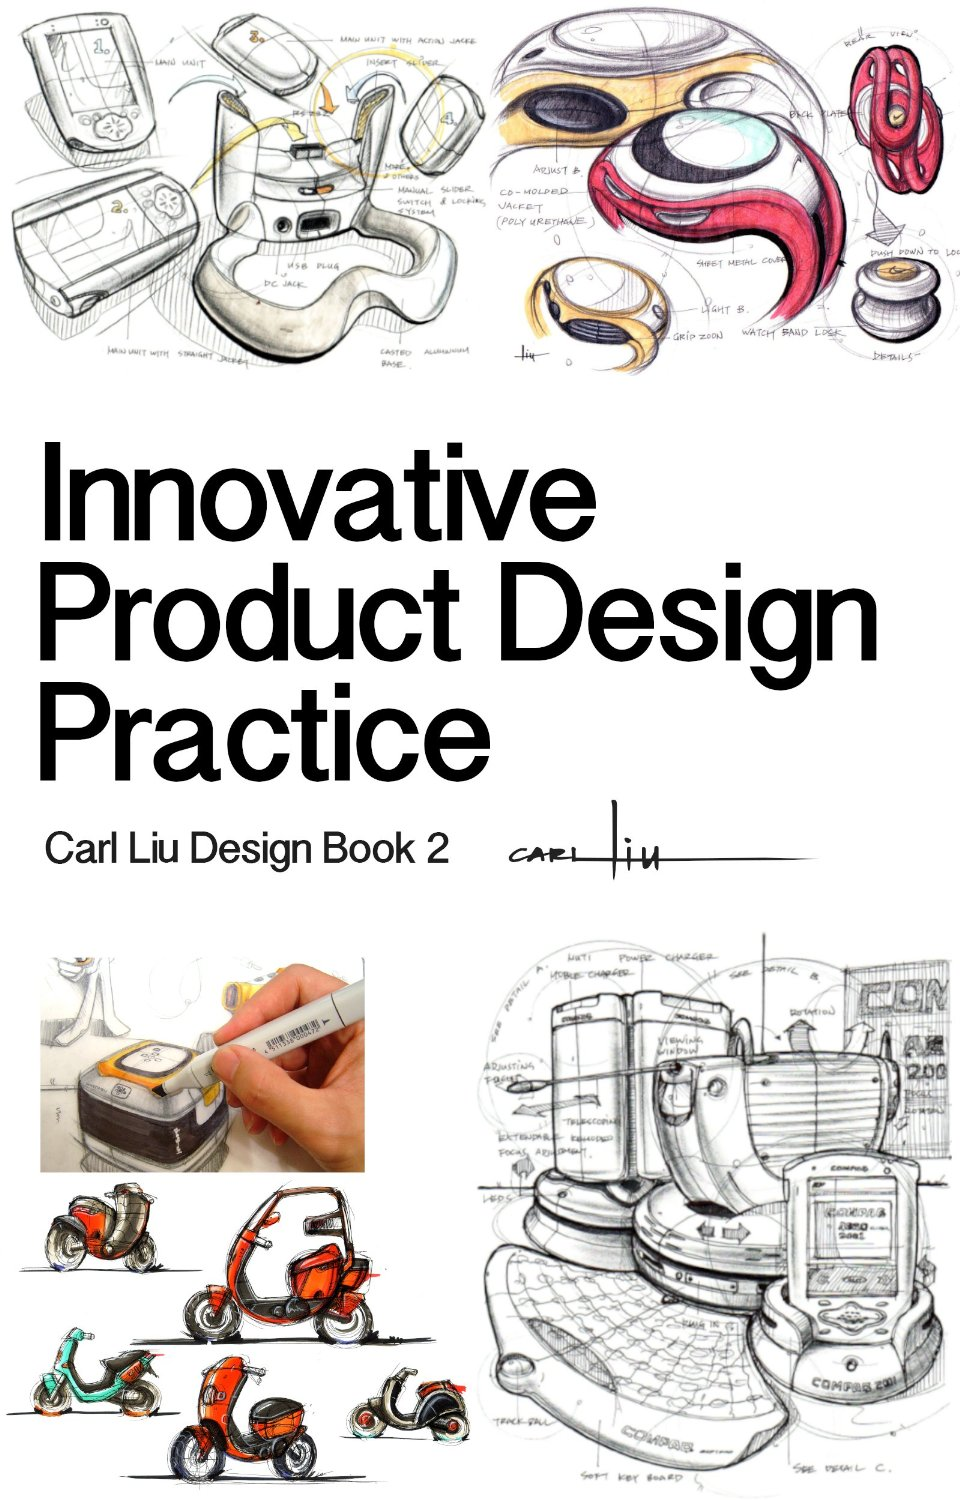 Design ebooks page 14 of 29 for Innovative product development companies